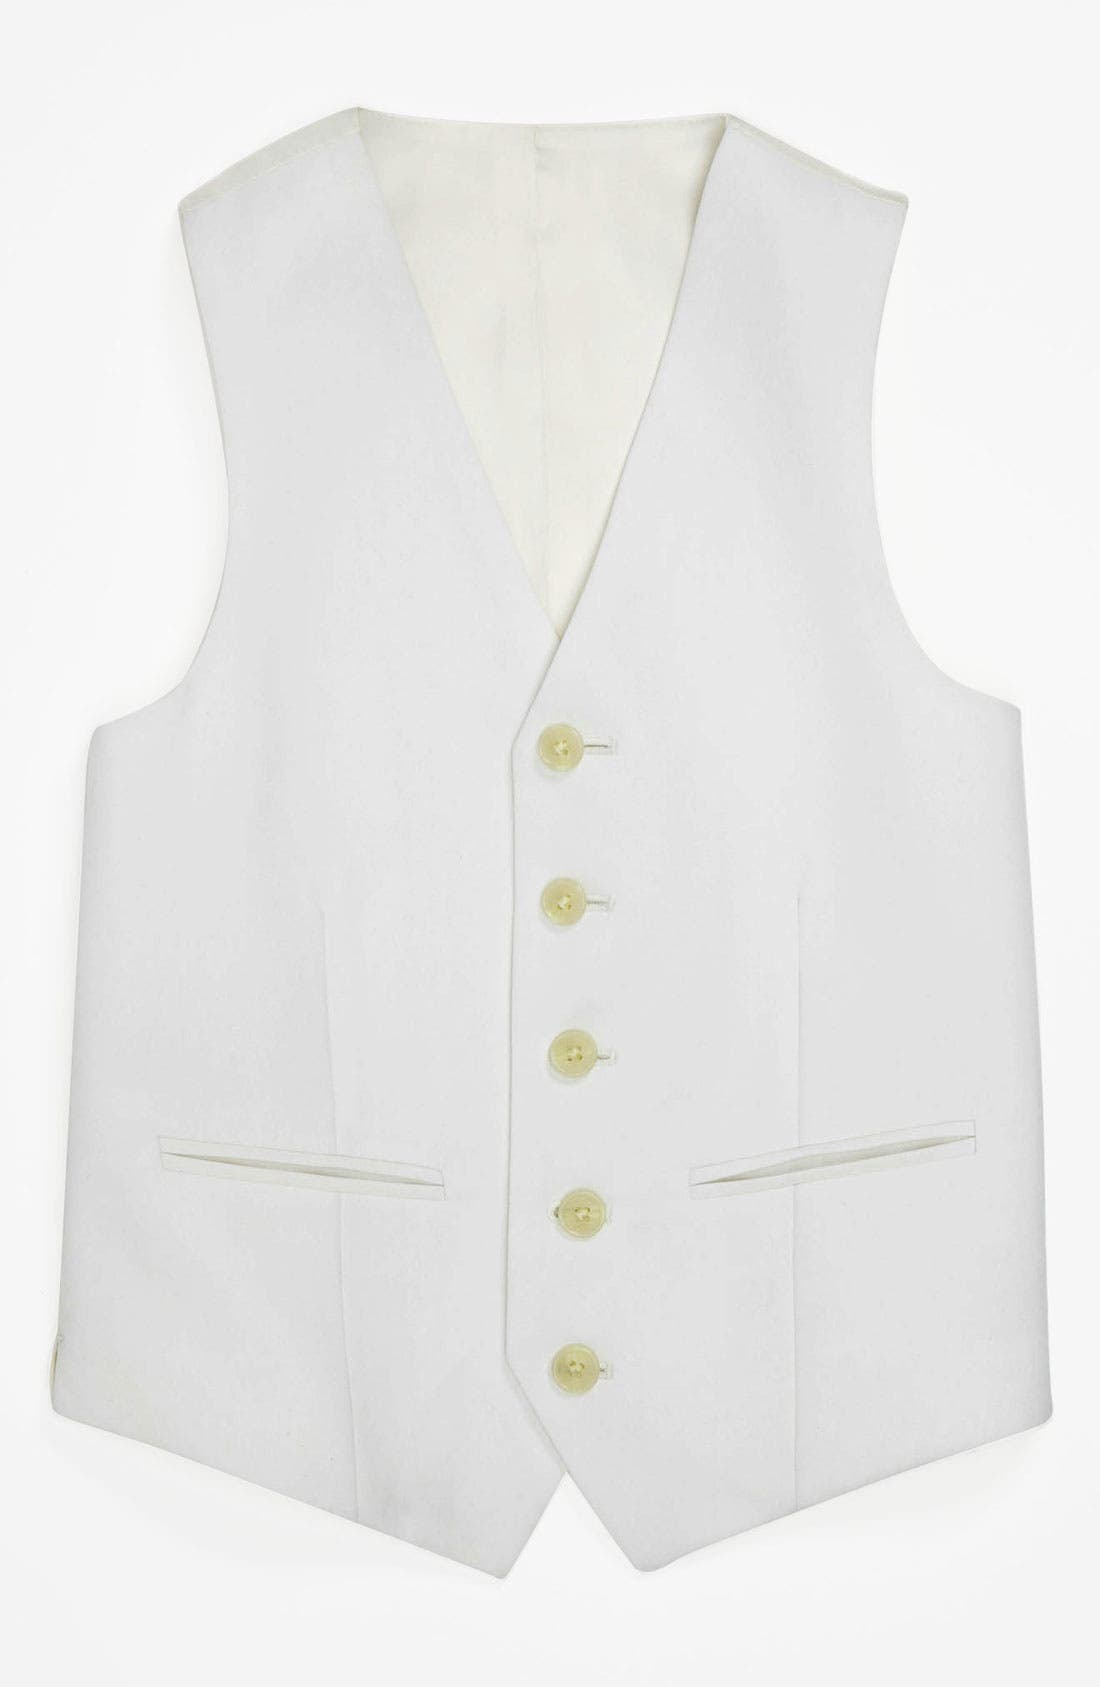 Alternate Image 1 Selected - Joseph Abboud Vest (Little Boys & Big Boys)